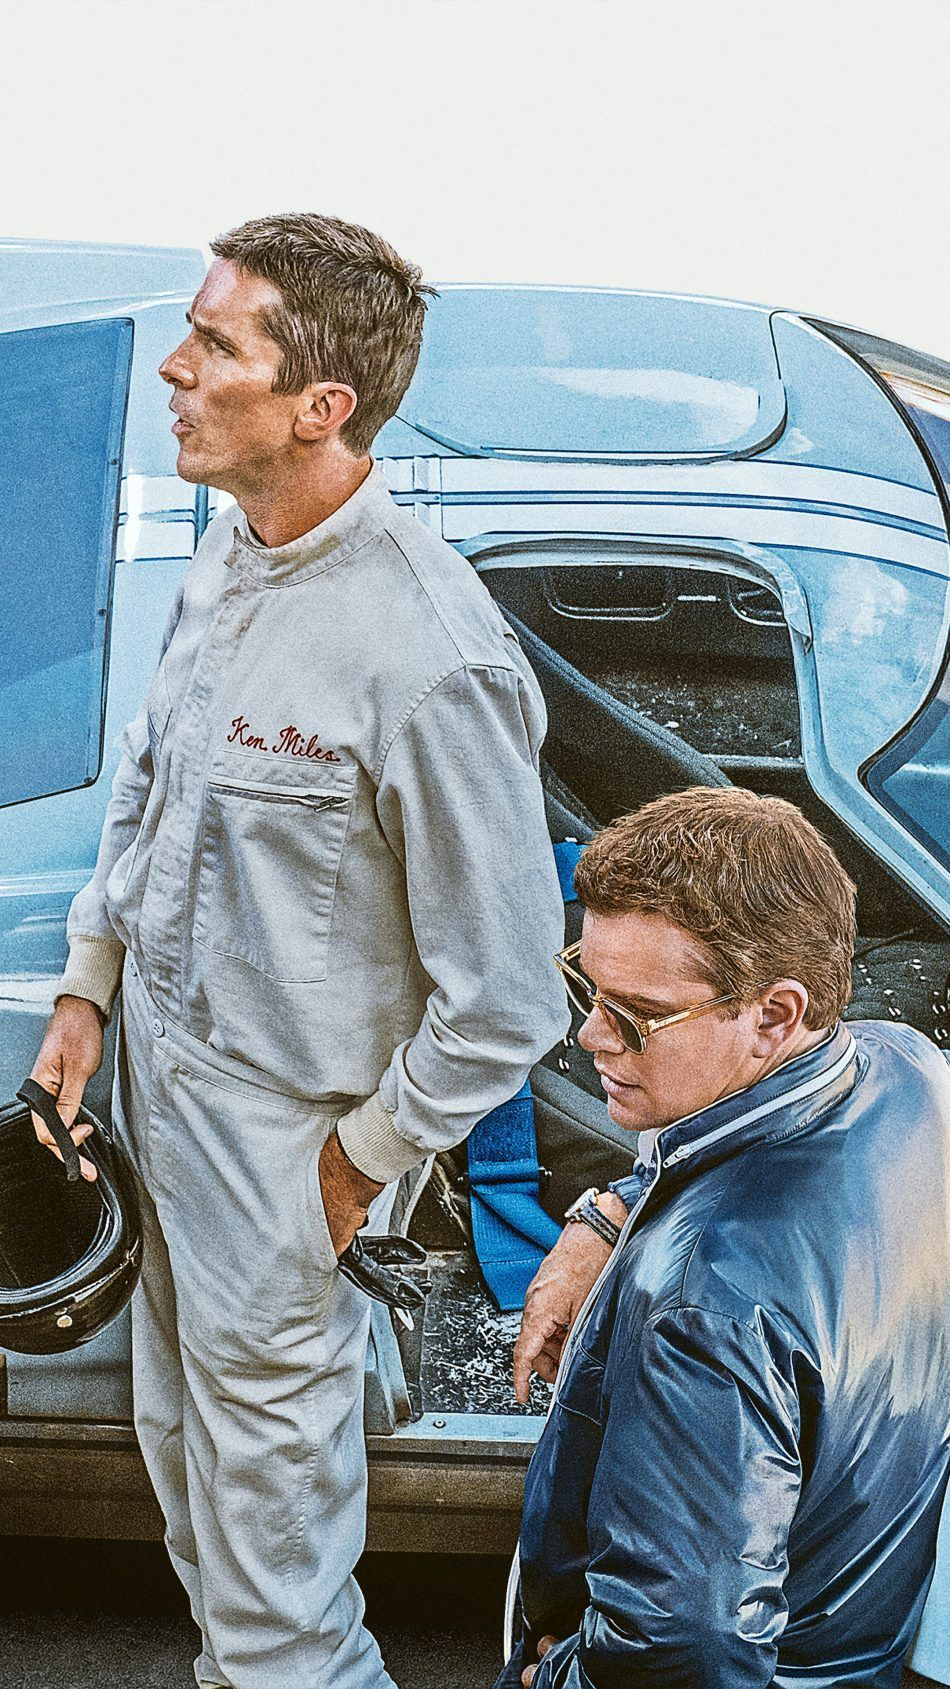 Christian Bale Matt Damon In Ford V Ferrari 2019 Free 4k Ultra Hd Mobile Wallpaper Obrazky